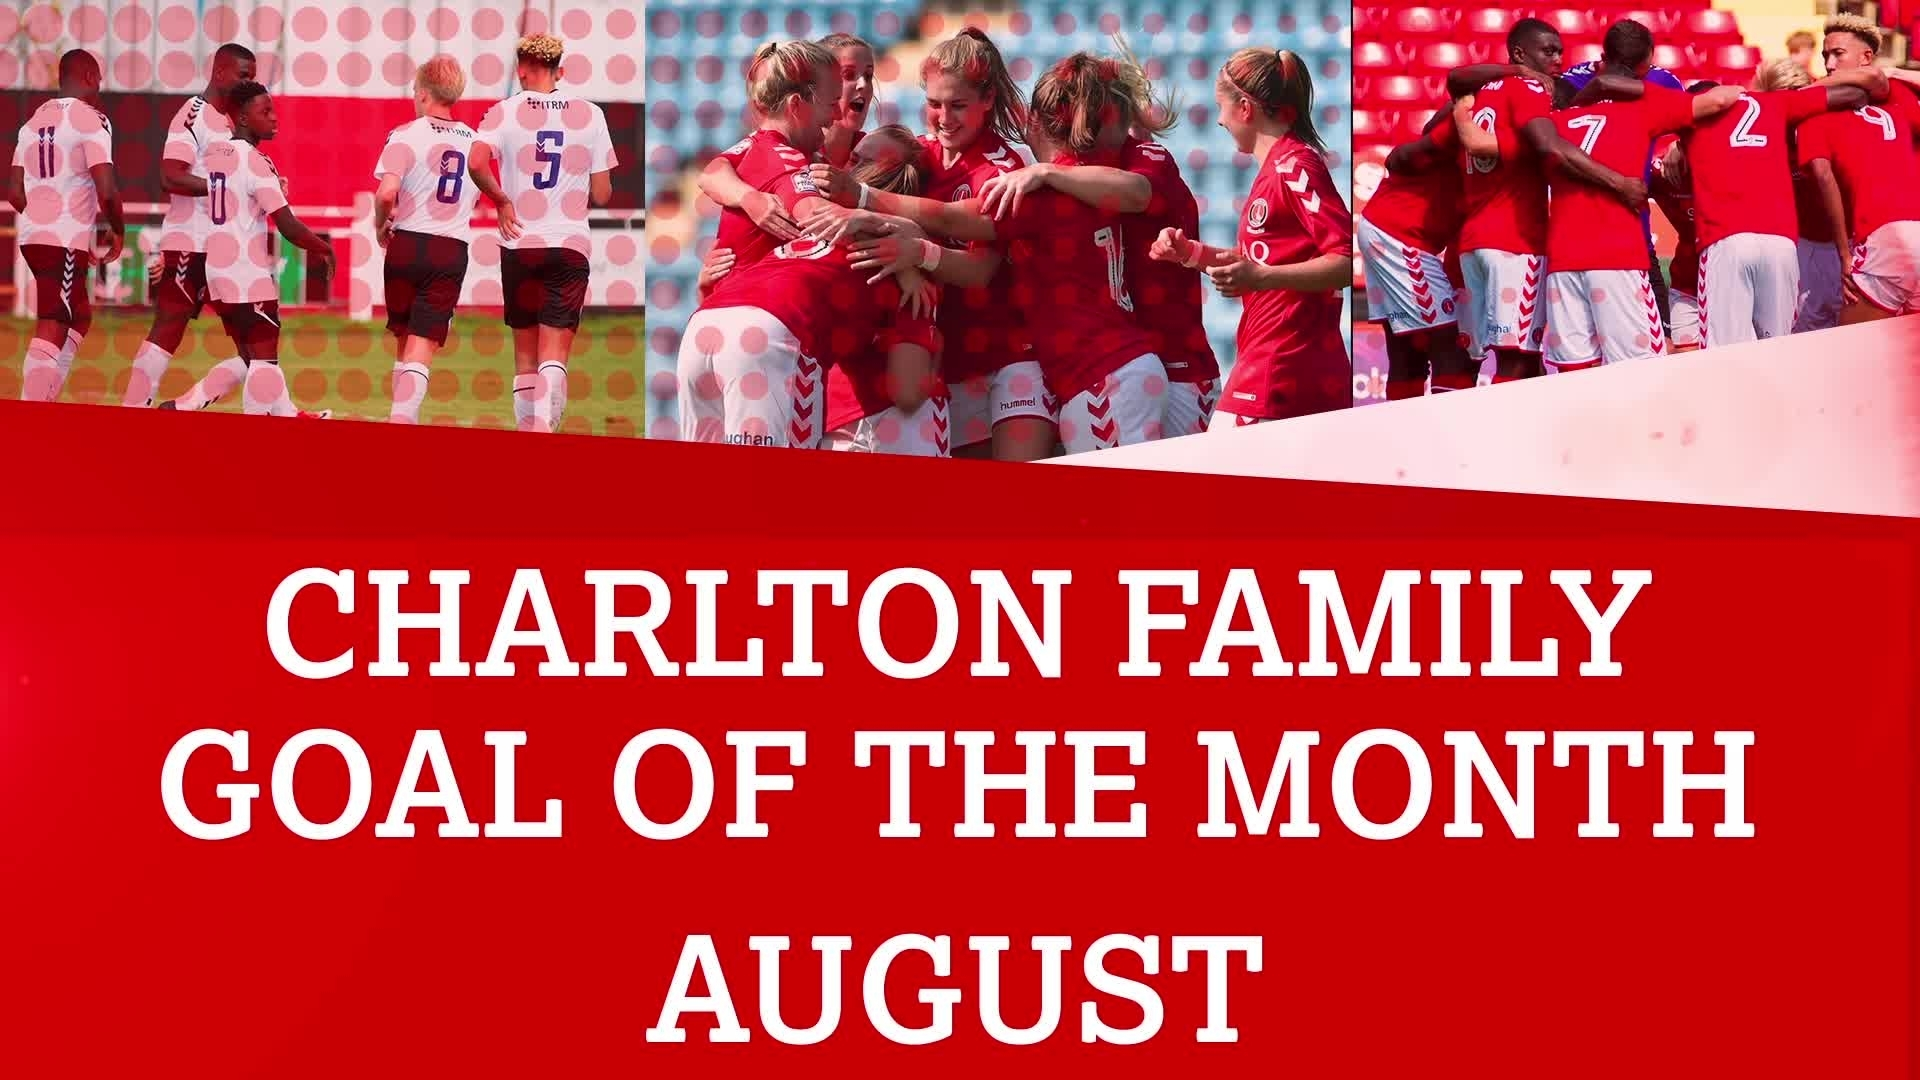 CHARLTON FAMILY GOAL OF THE MONTH | August